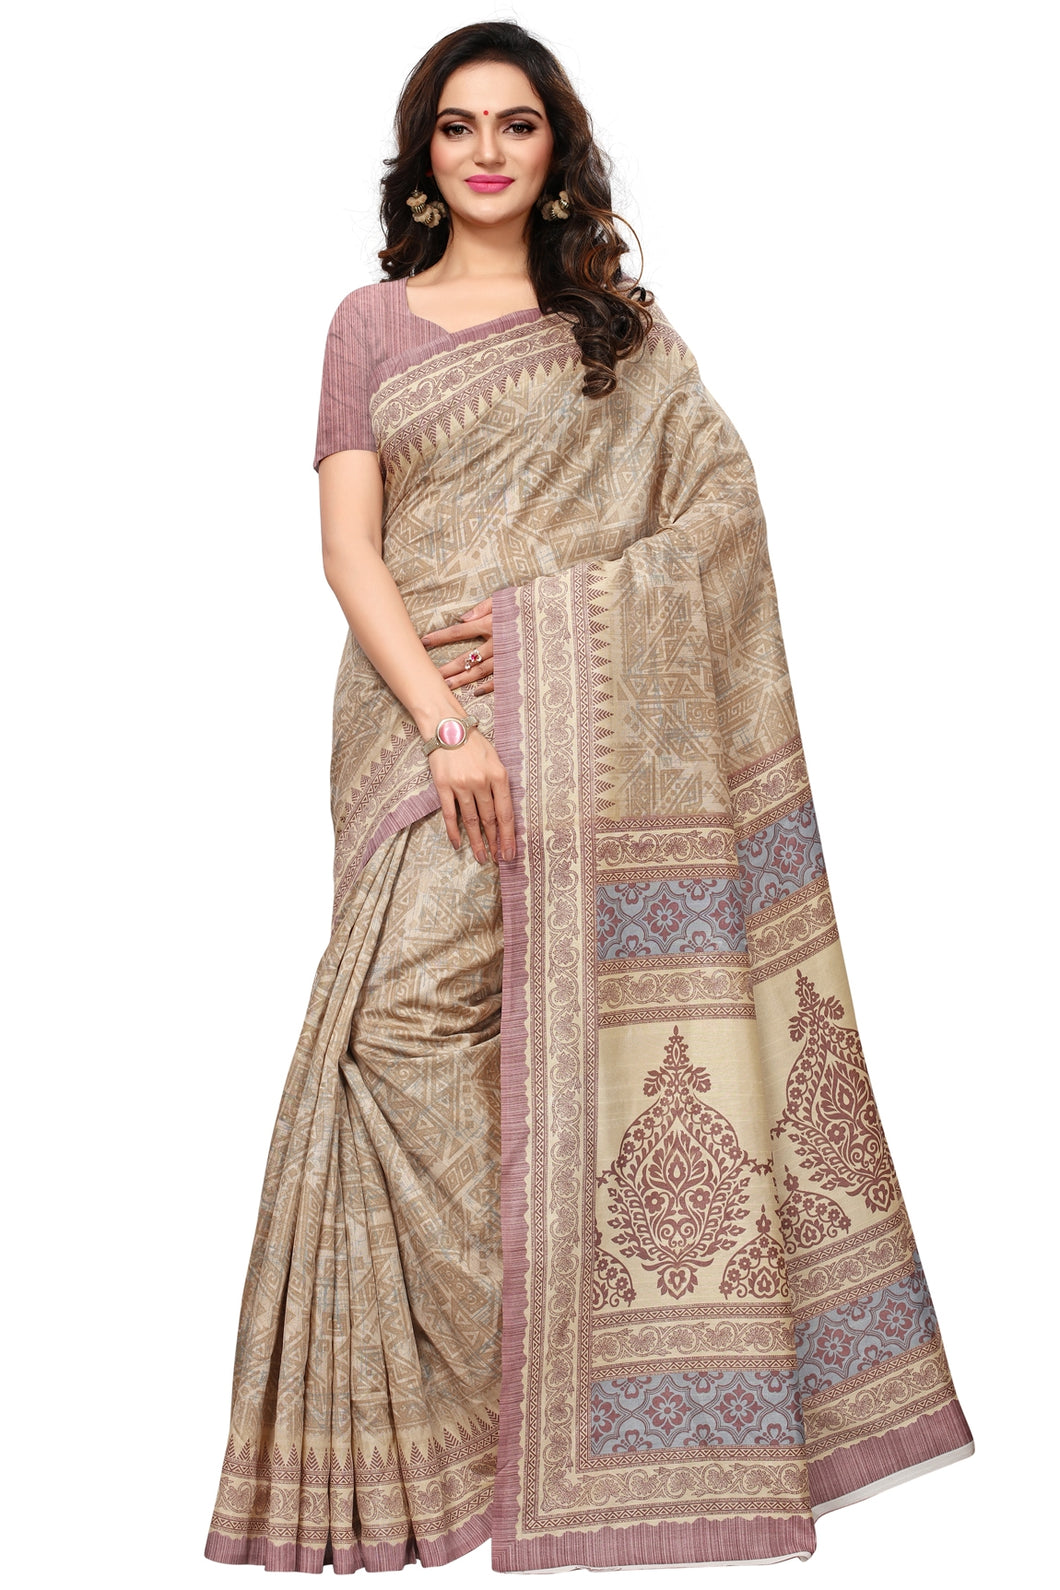 Bhelpuri Beige Bhagalpuri Silk Printed Saree with Bloue Piece